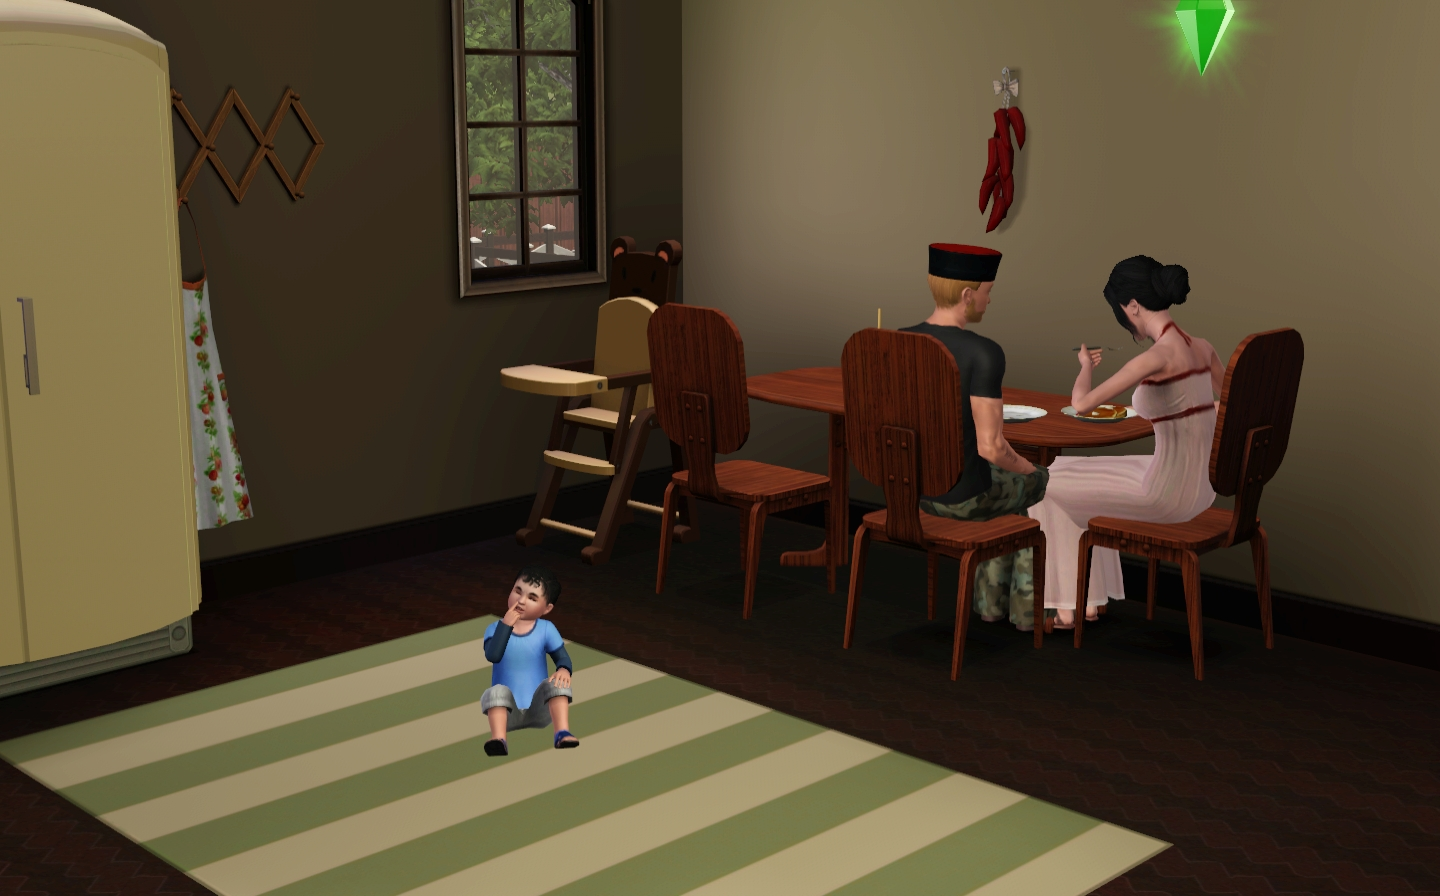 For the second part of Alpha Paradise (2018), the artist created a traditional Cossack family in the Sims 3 video game